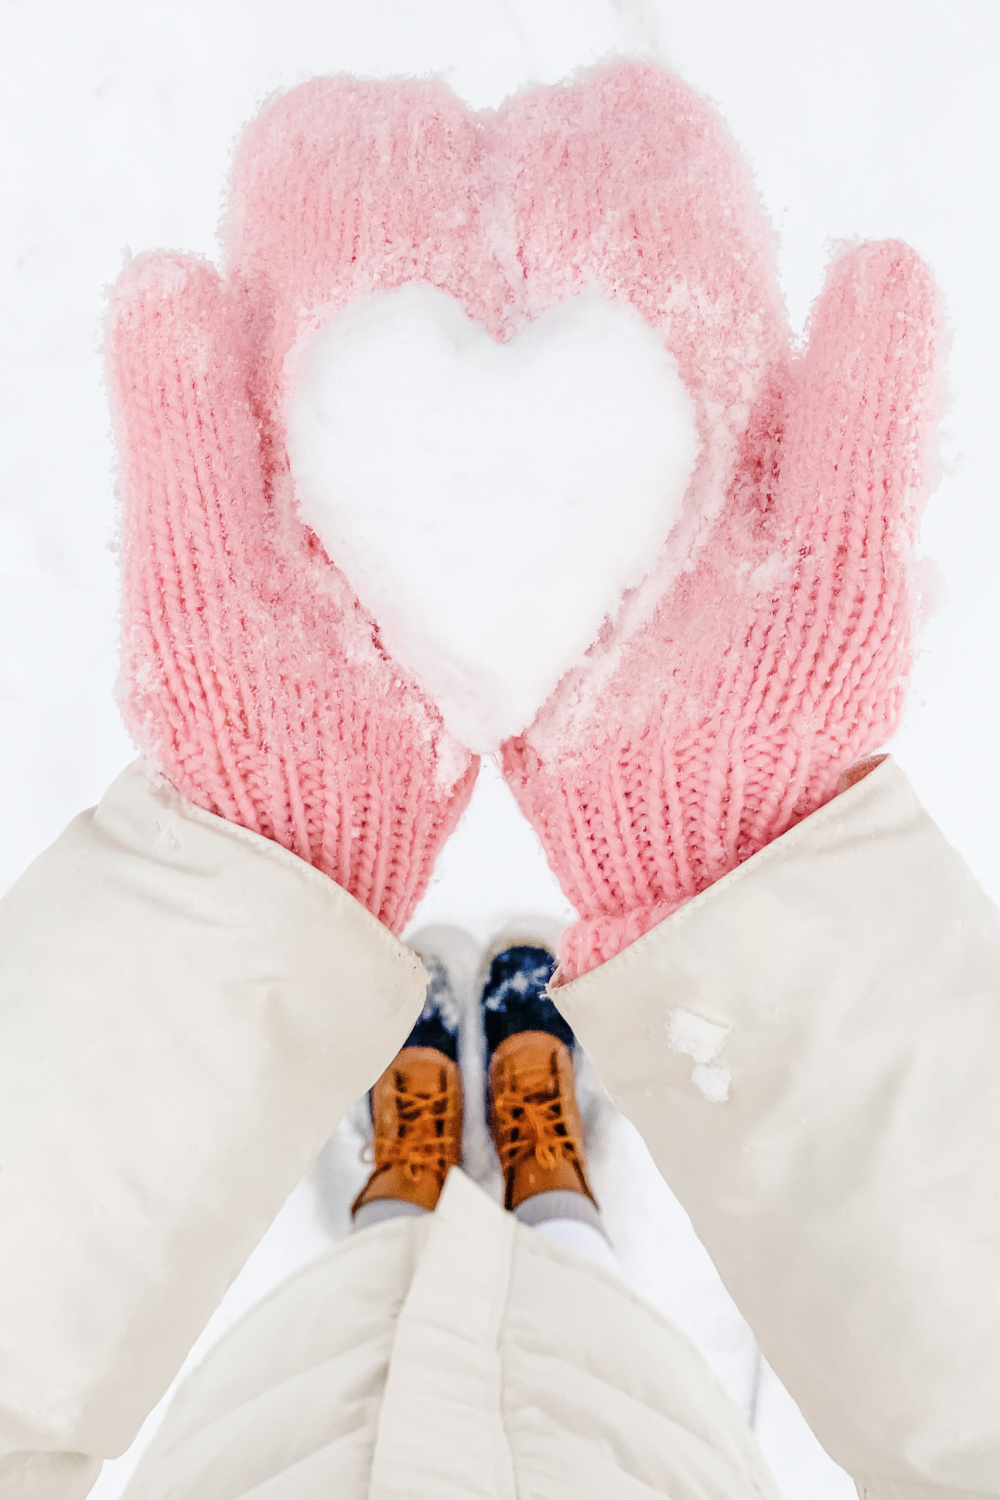 Best of January: 10 Things I Loved in January 2019 by popular affordable fashion and southern lifestyle blogger Stephanie Ziajka from Diary of a Debutante, heart shaped snowball picture, cute heart snowball in mittens picture